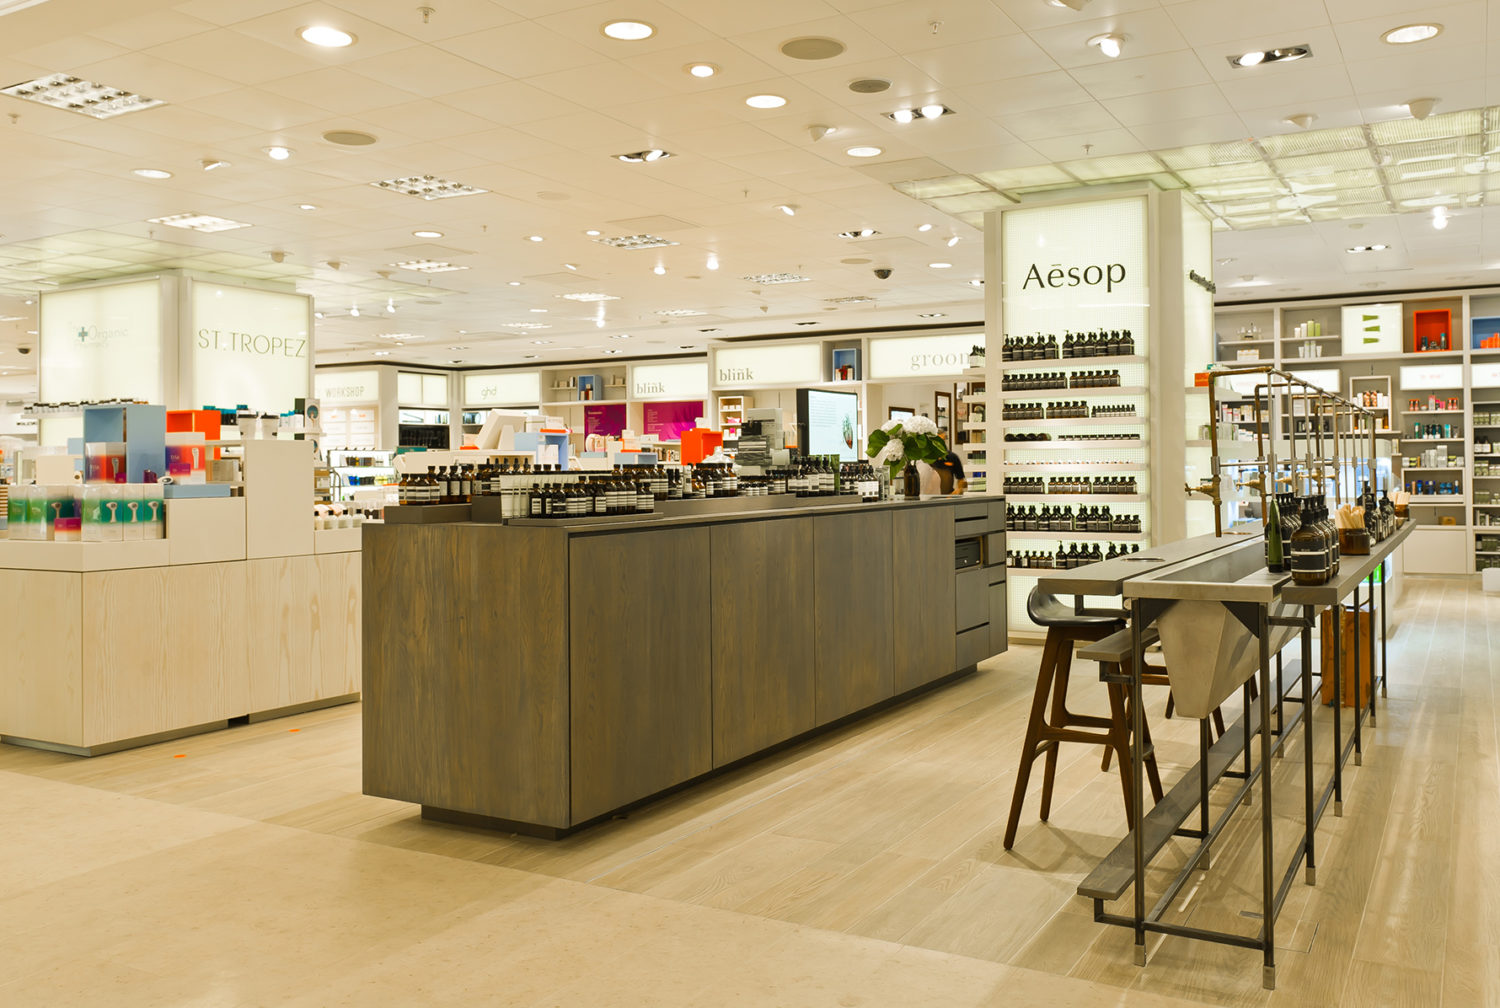 Aesop in Selfridges - London